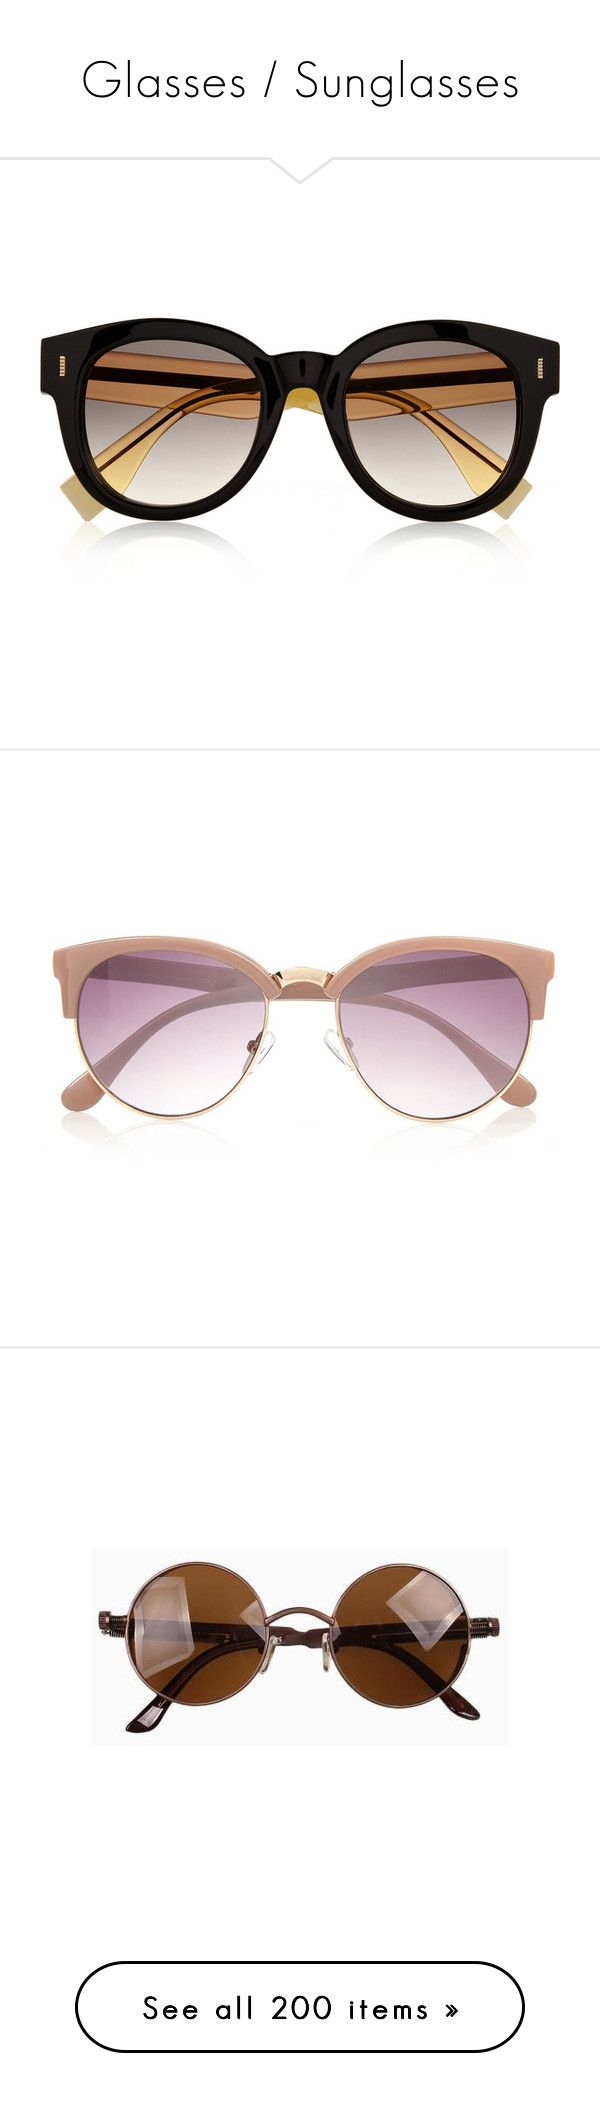 """""""Glasses / Sunglasses"""" by chelseapetrillo ❤ liked on Polyvore featuring accessories, eyewear, sunglasses, glasses, fendi, two tone glasses, fendi sunglasses, two-tone sunglasses, 2 tone sunglasses and fendi eyewear"""